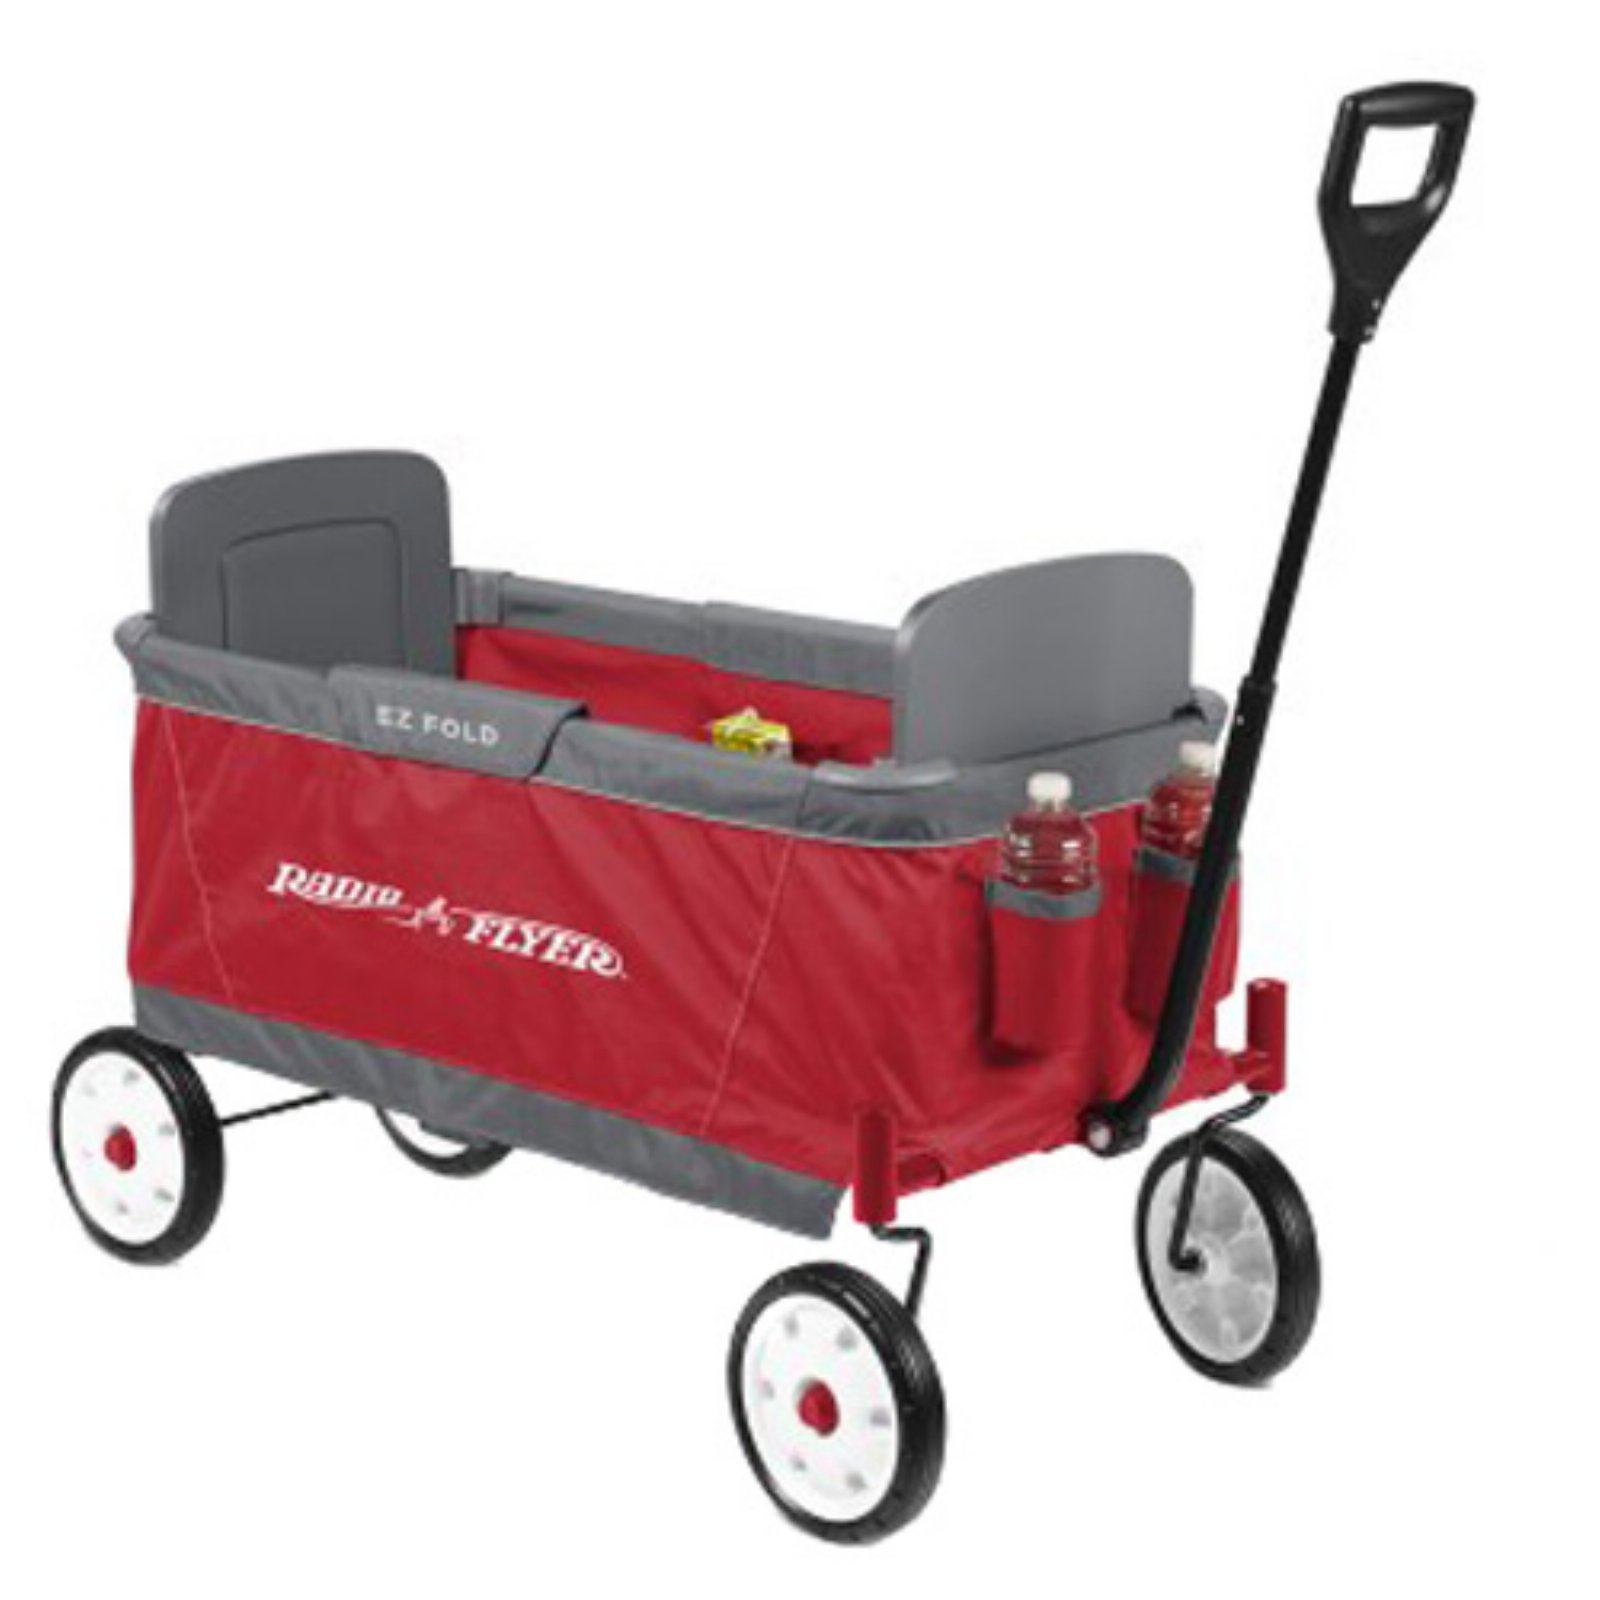 Radio Flyer 2 Passenger Ultimate EZ Folding Wagon for Children and Cargo, Red by Radio Flyer